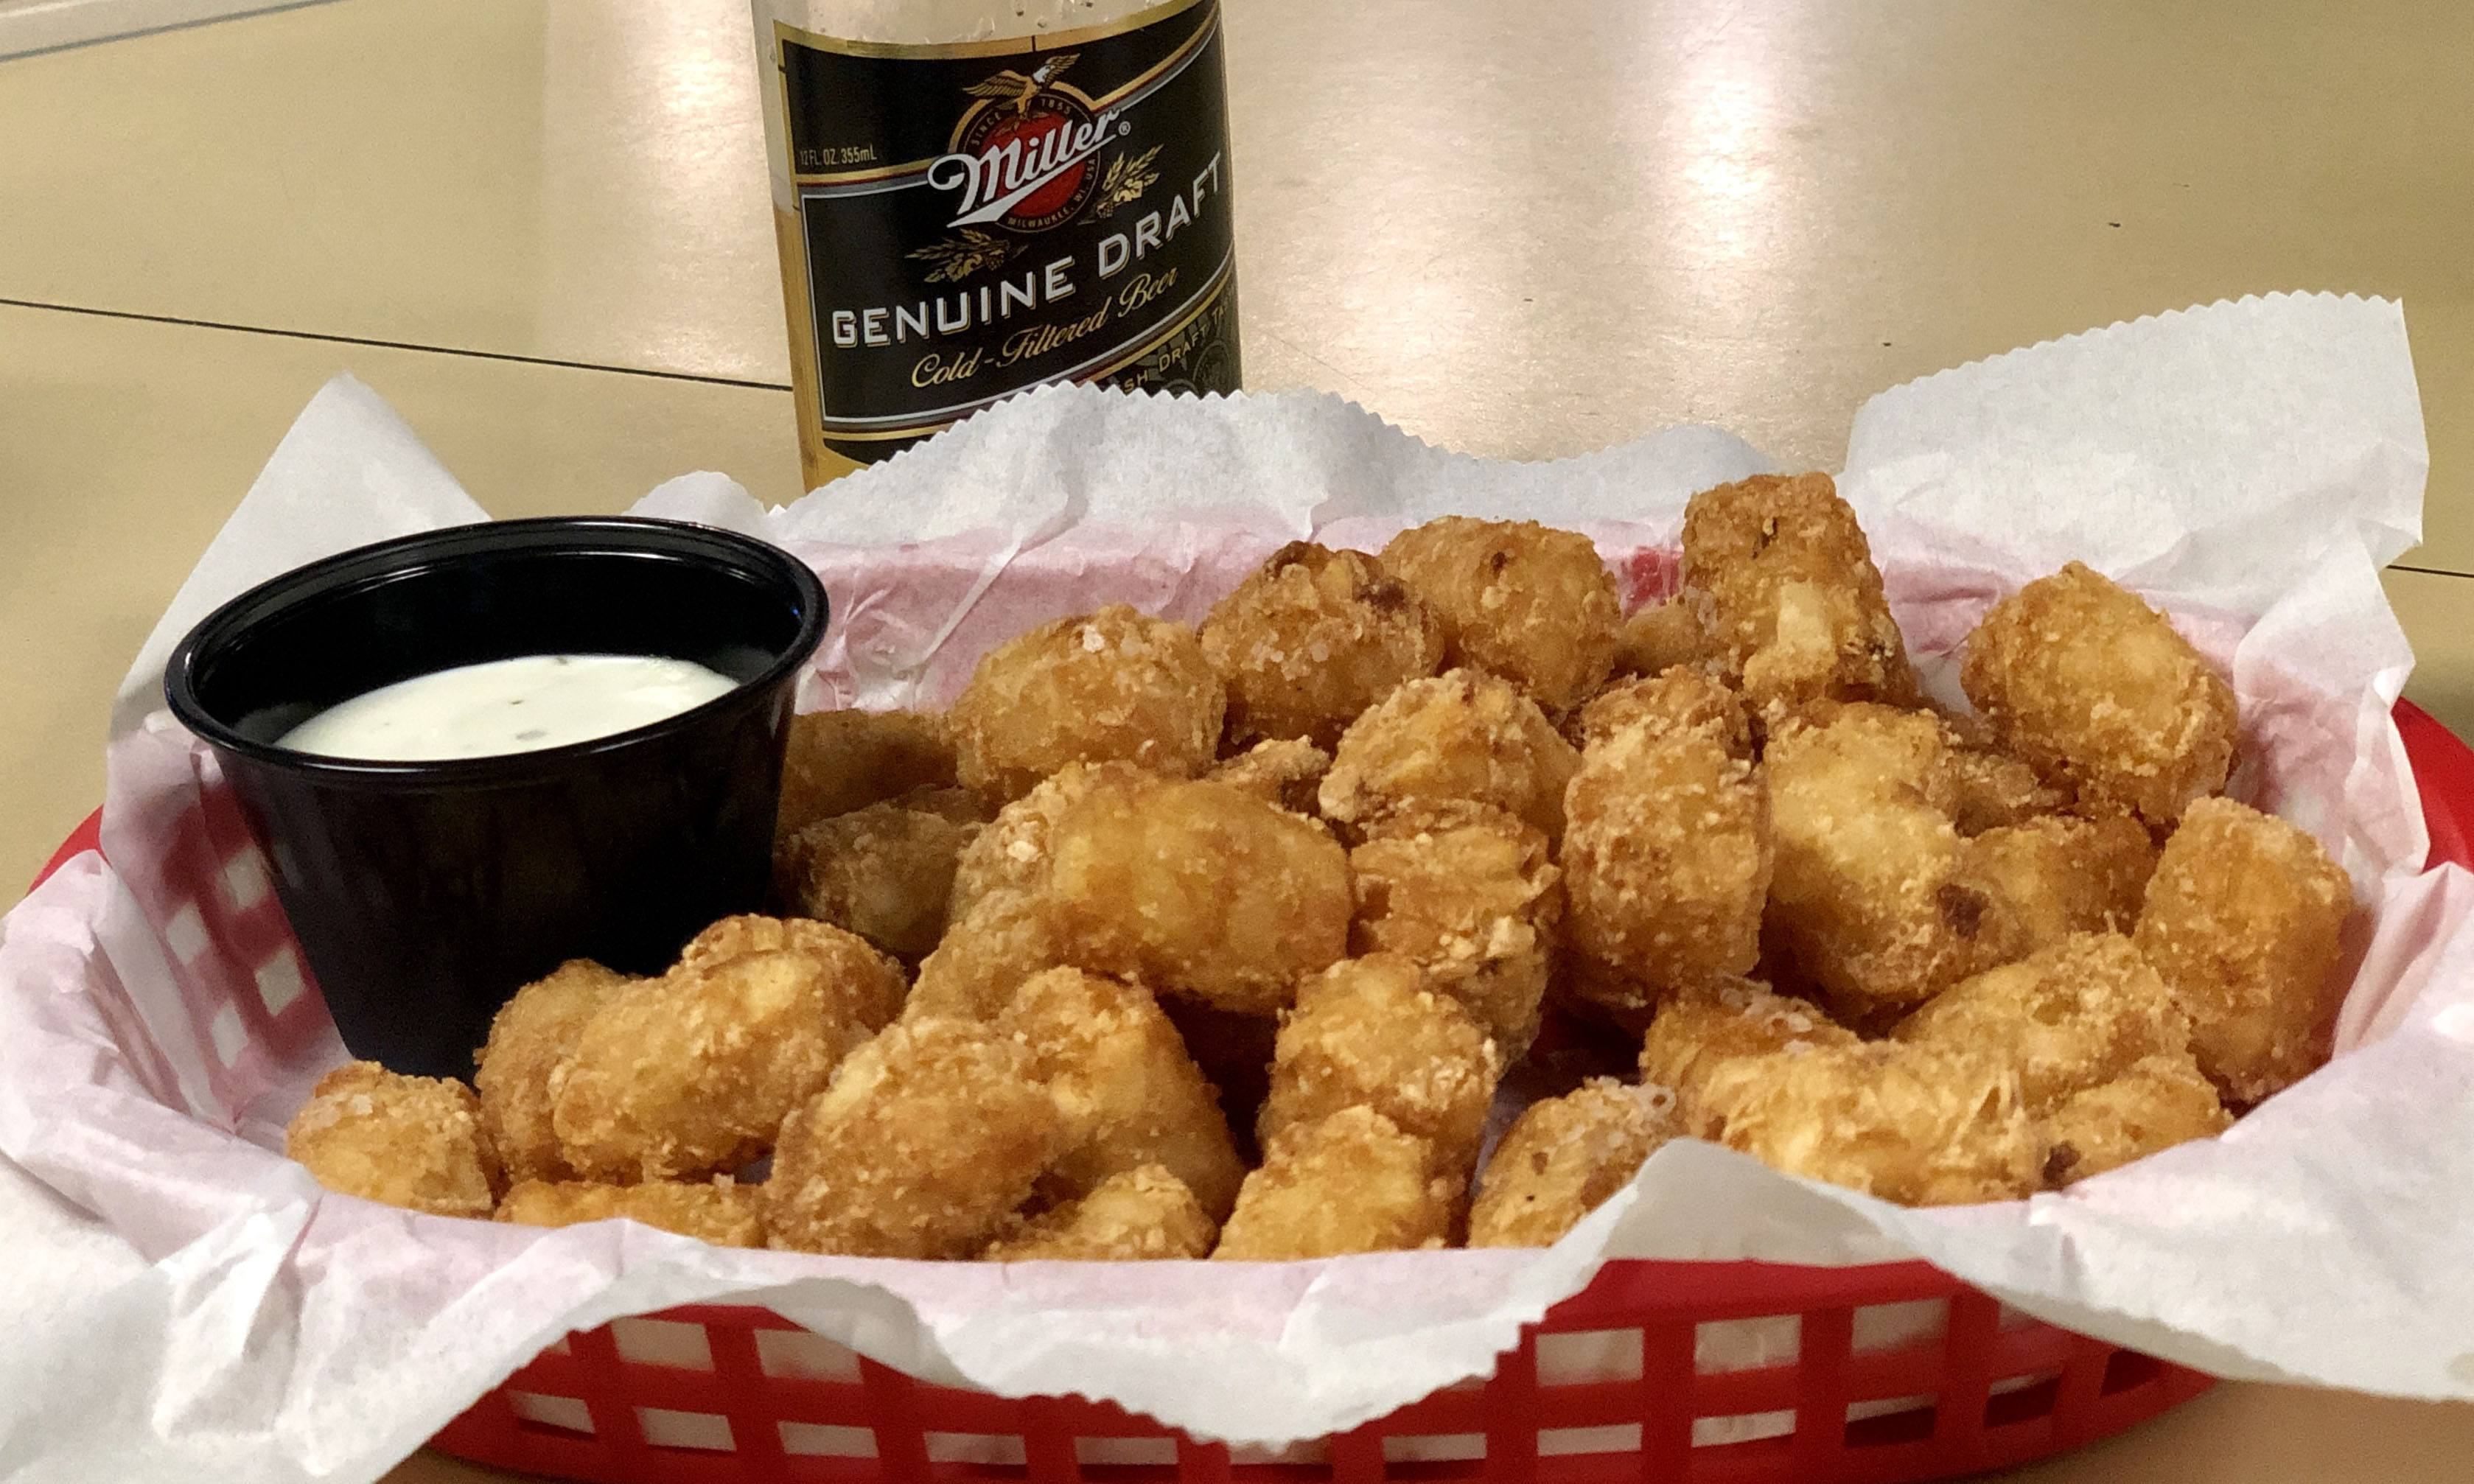 Image of the Tater Tots at Shakopee Bowl